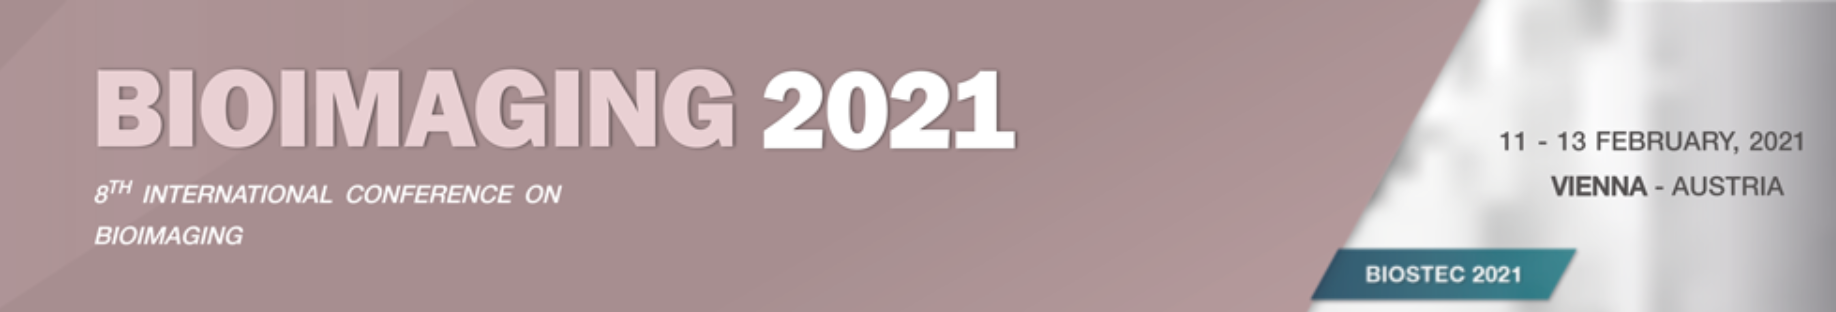 BIOIMAGING 2021